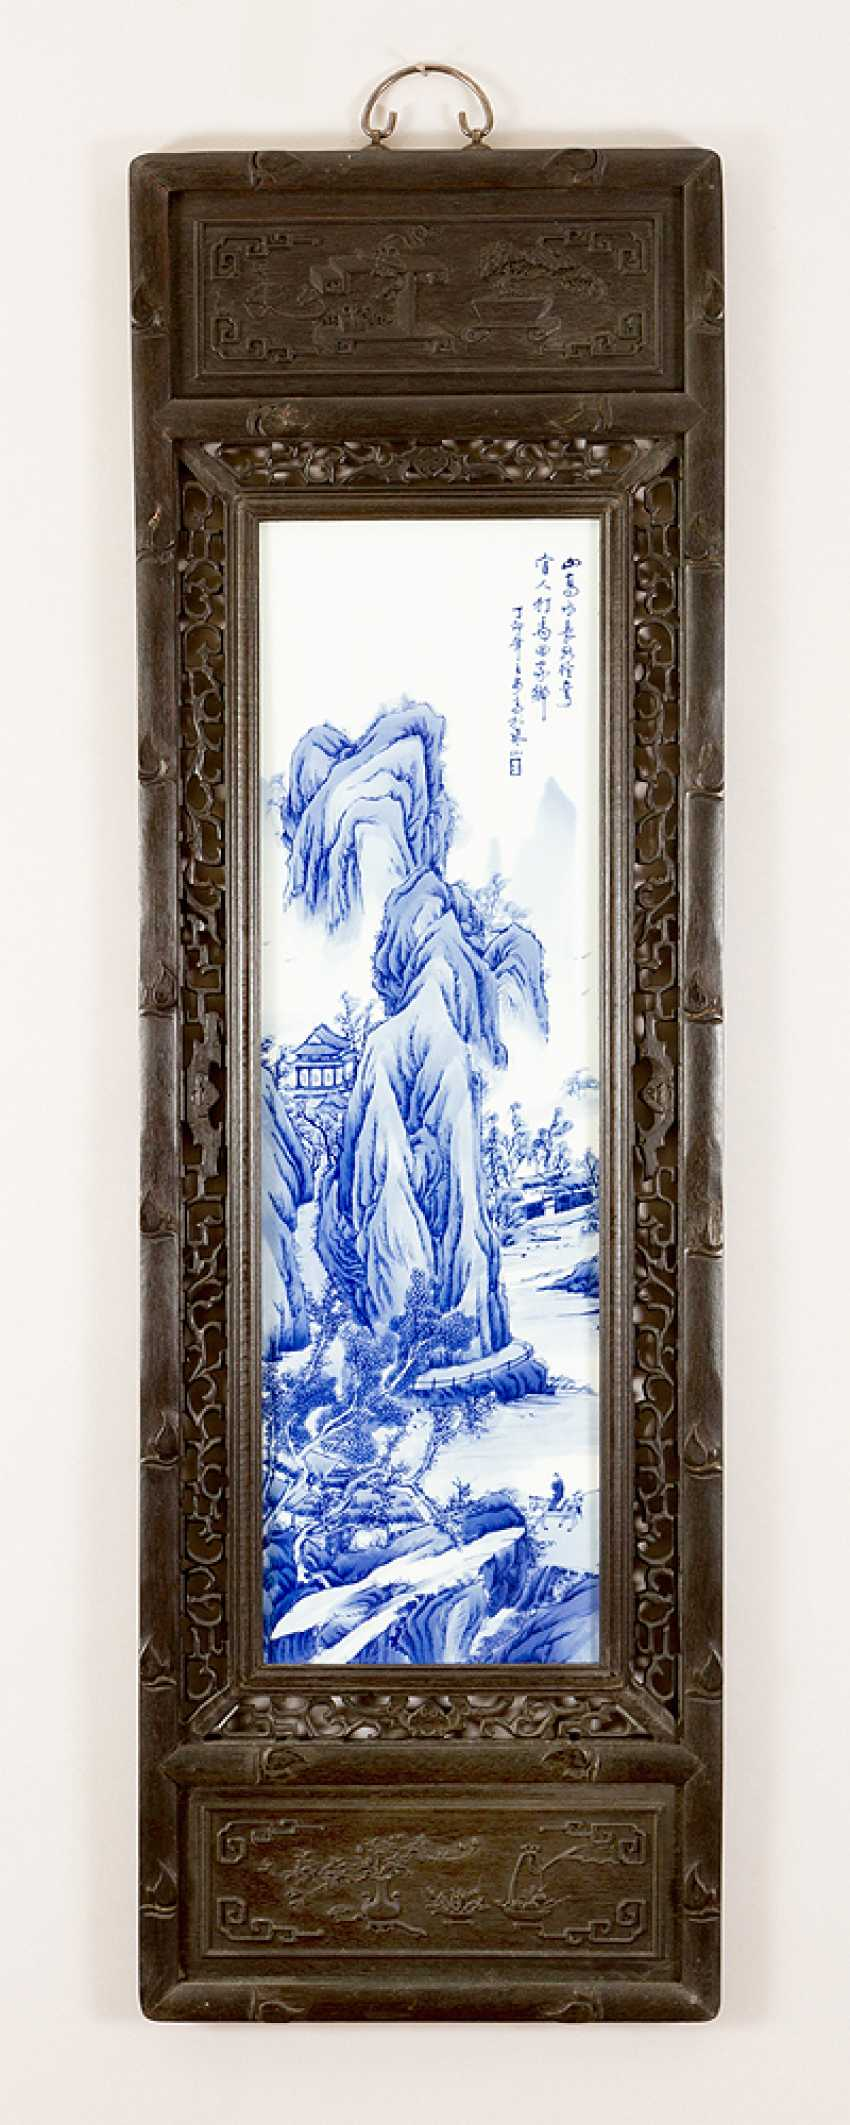 Four Chinese porcelain plaques with painted river landscapes in blue colour on white ground, glazed, on top Chinese script signs and artist's stamp - photo 2